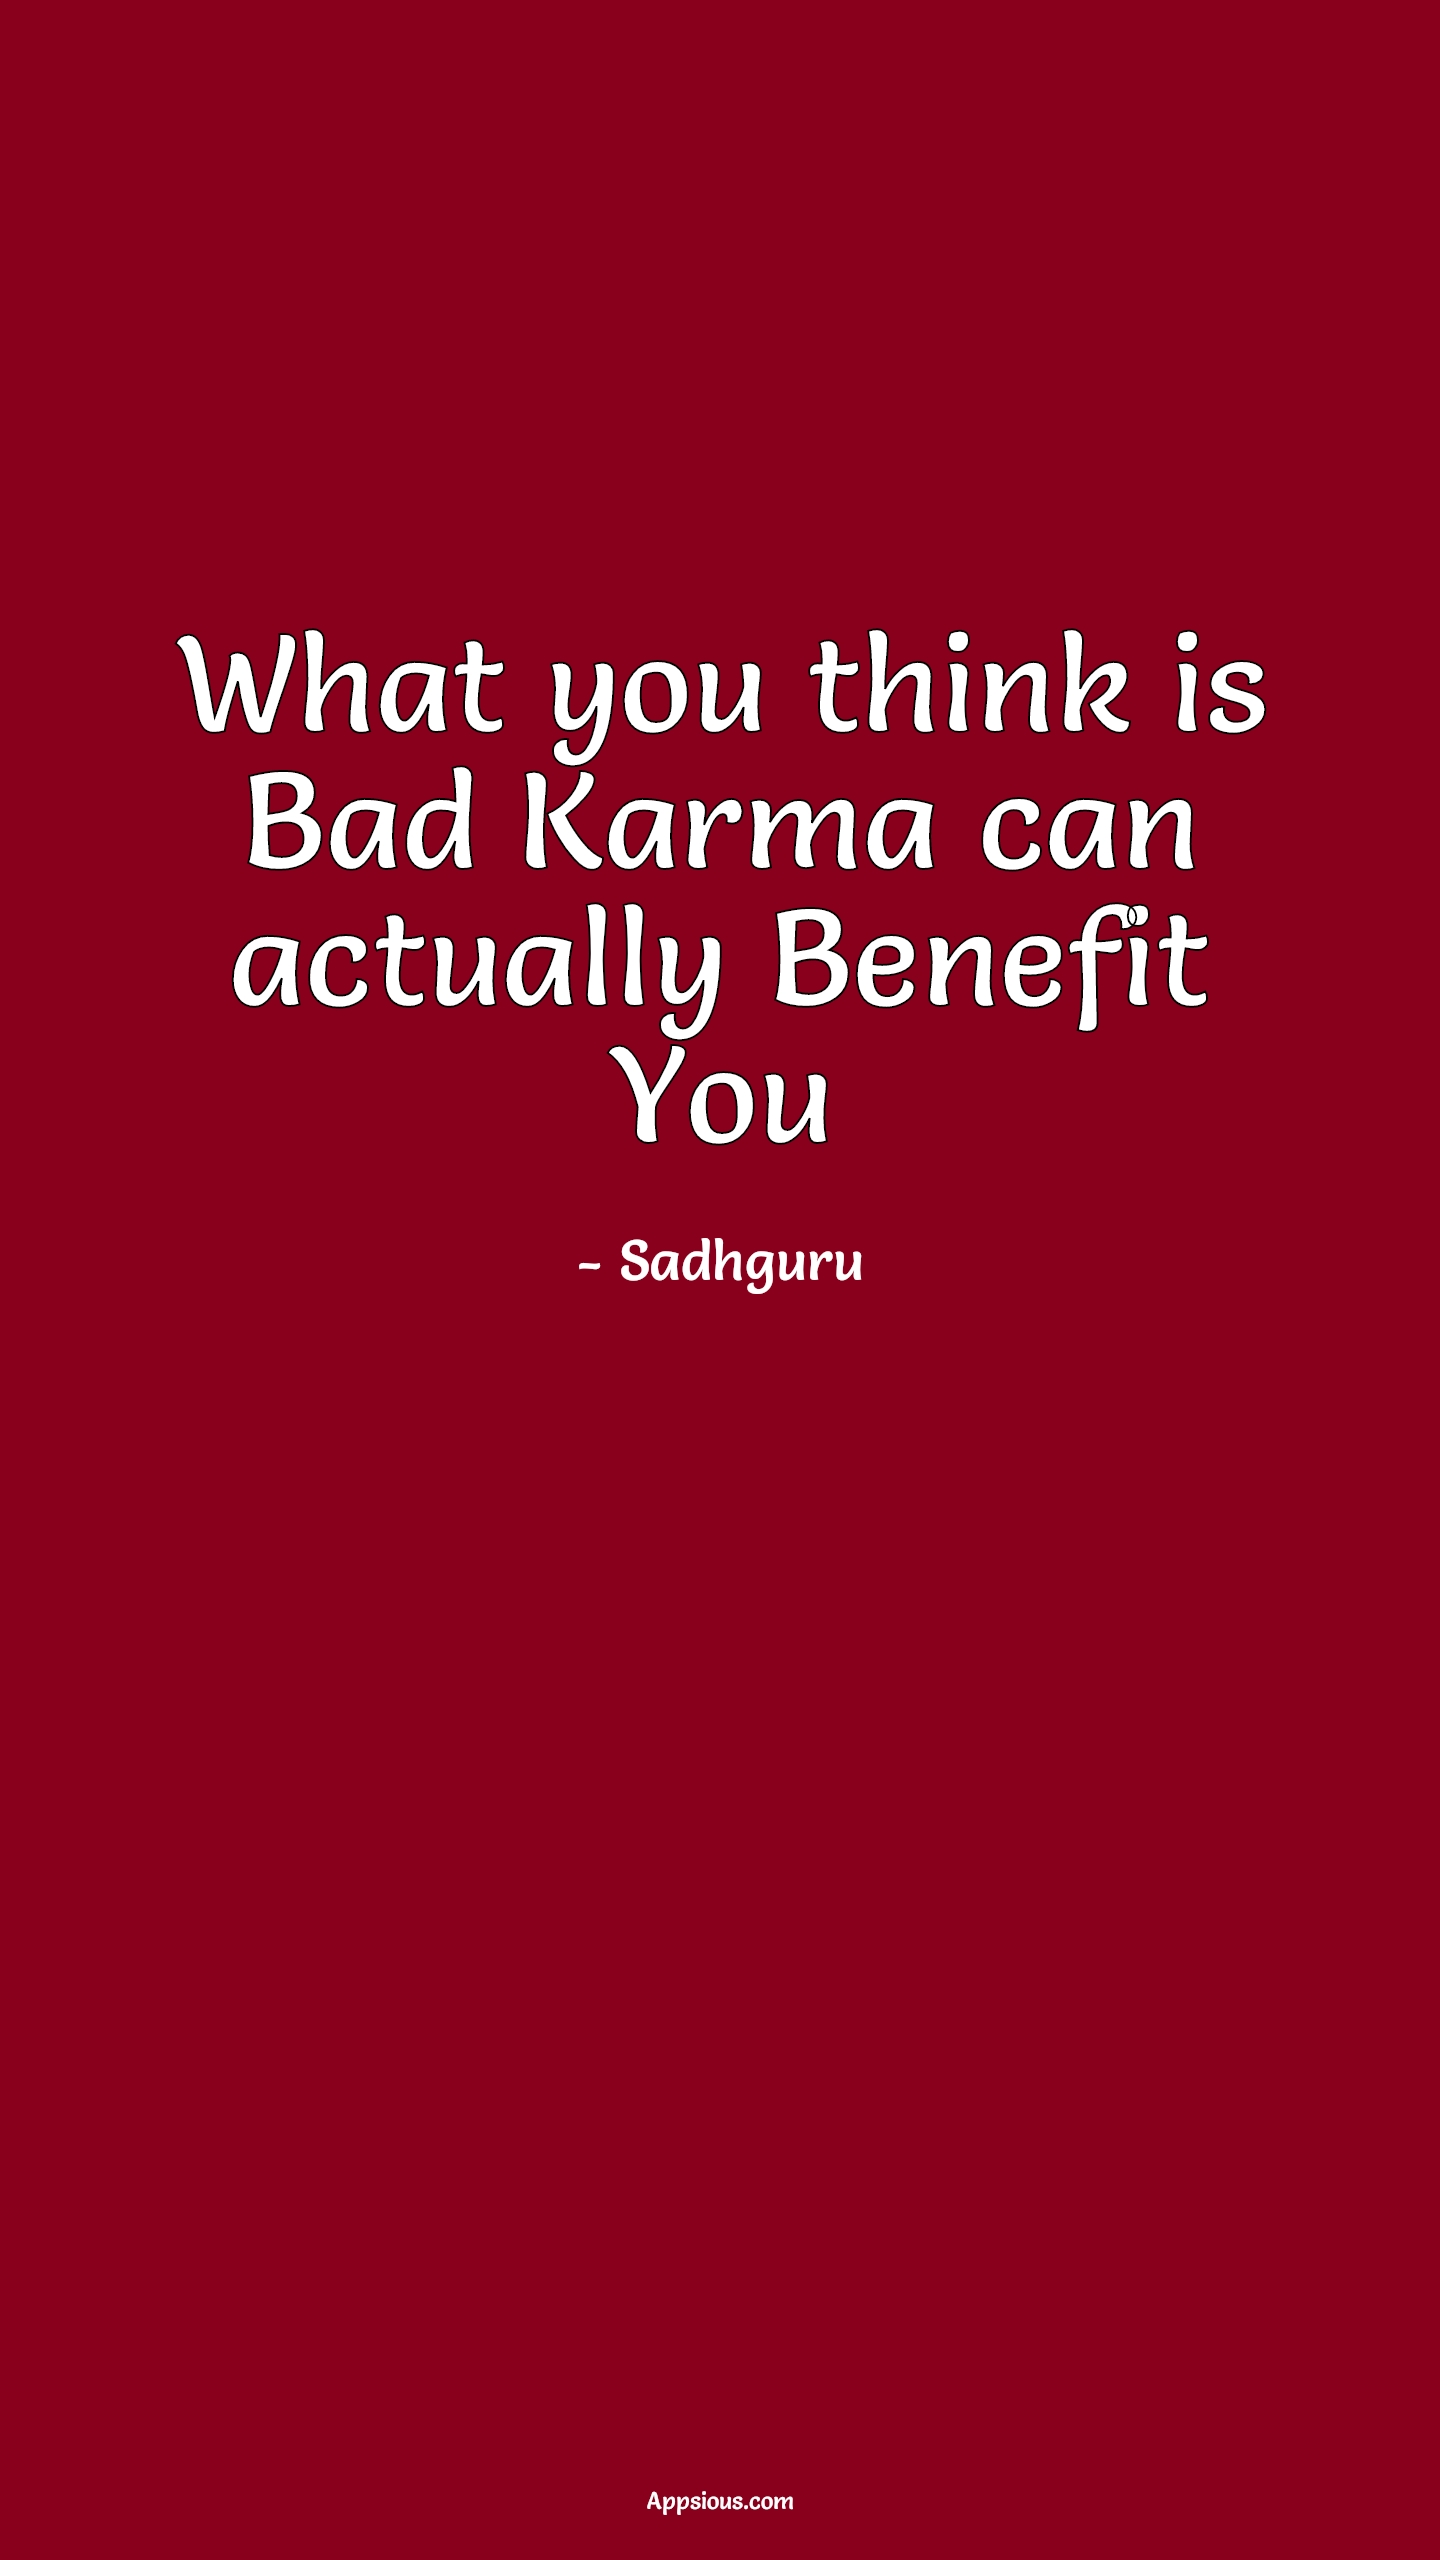 What you think is Bad Karma can actually Benefit You